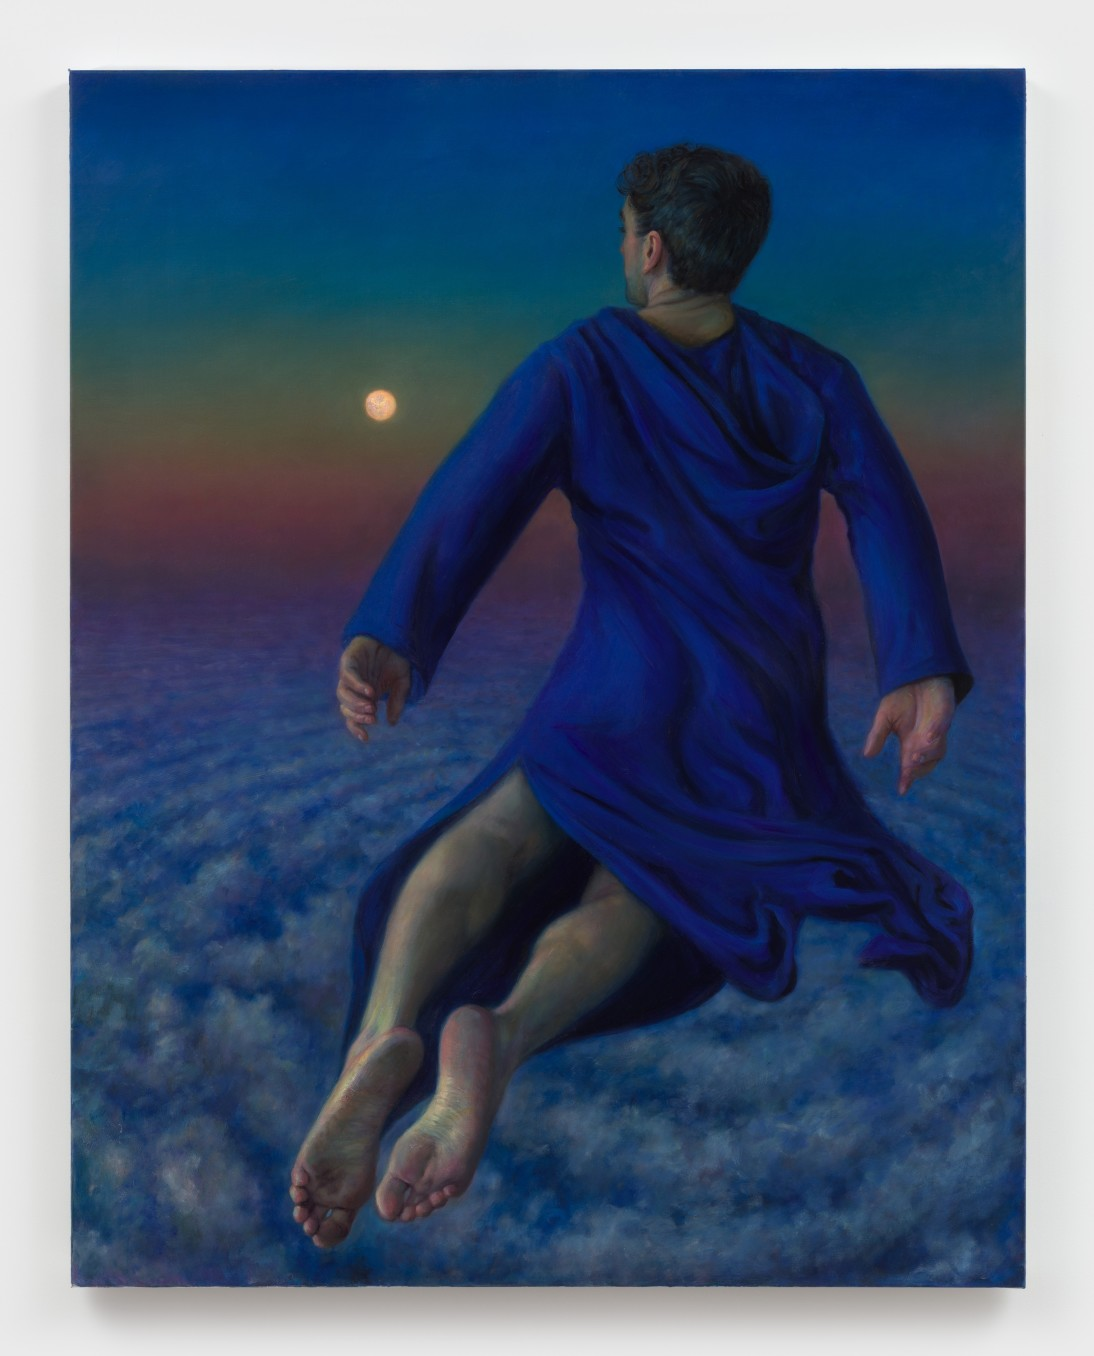 flying dream (man and moon), 2020 Oil on canvas 116.8 x 91.4 cm 46 x 36 in